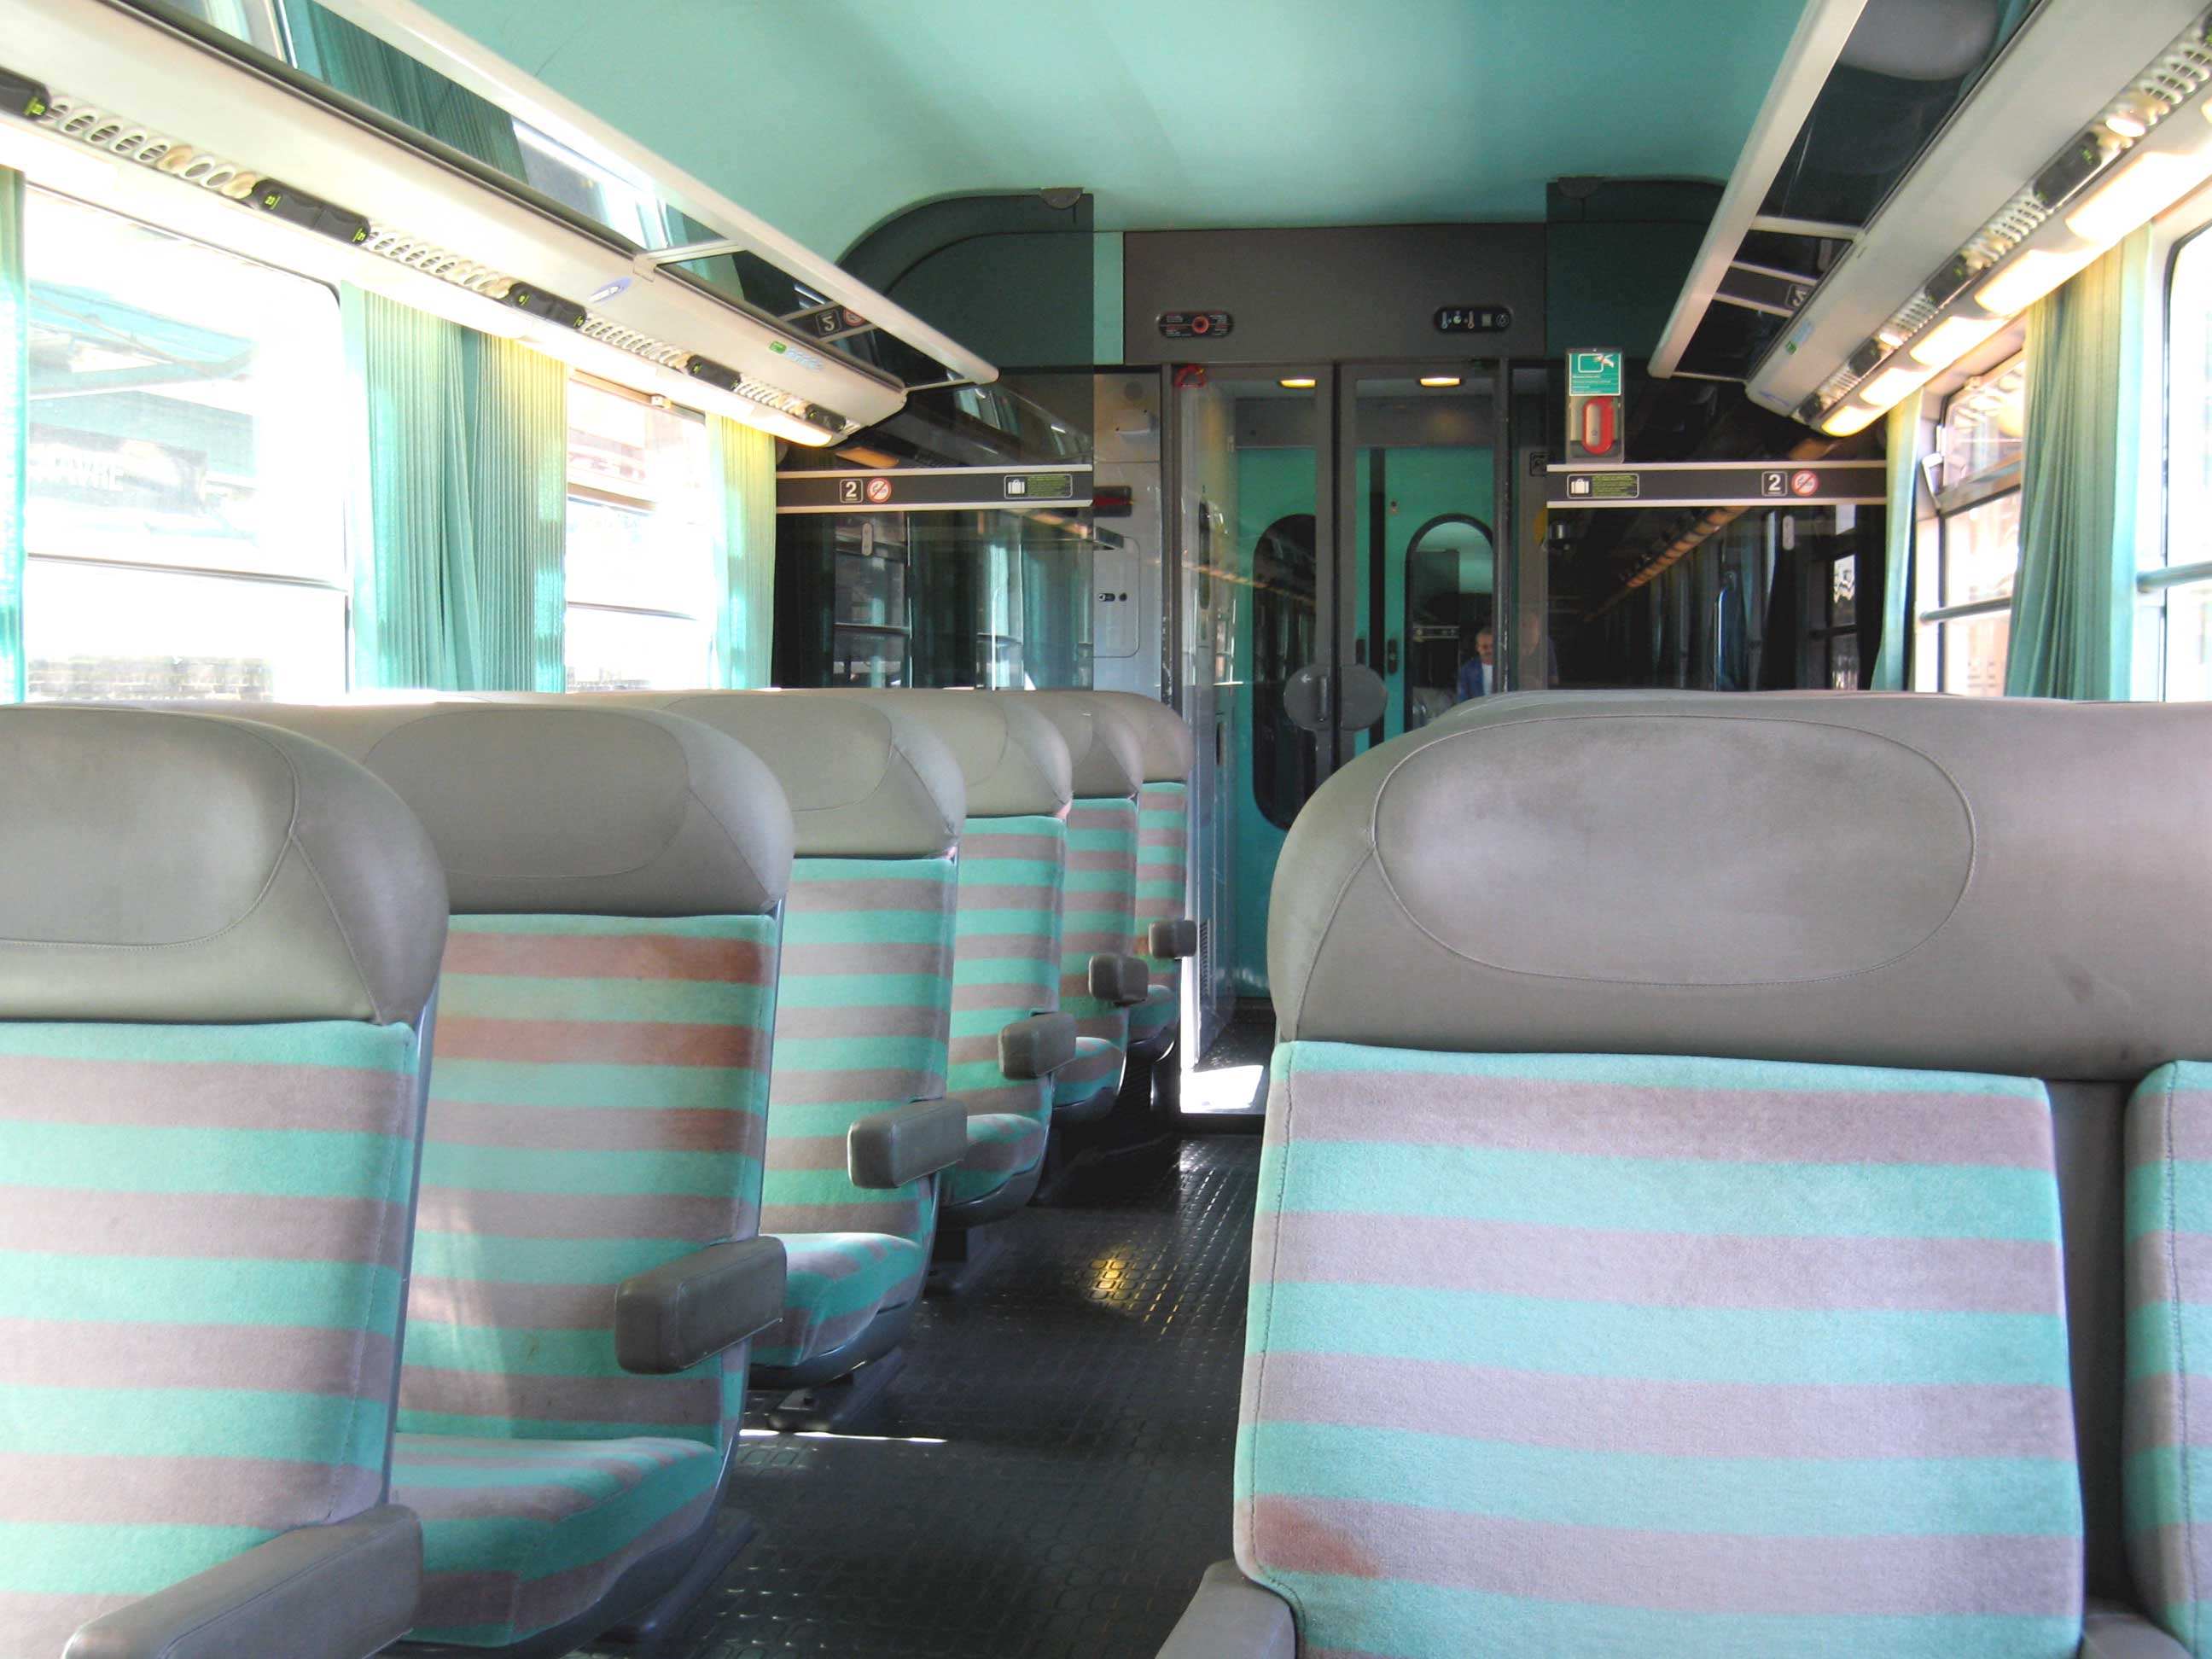 Interieur Trein Train Corail